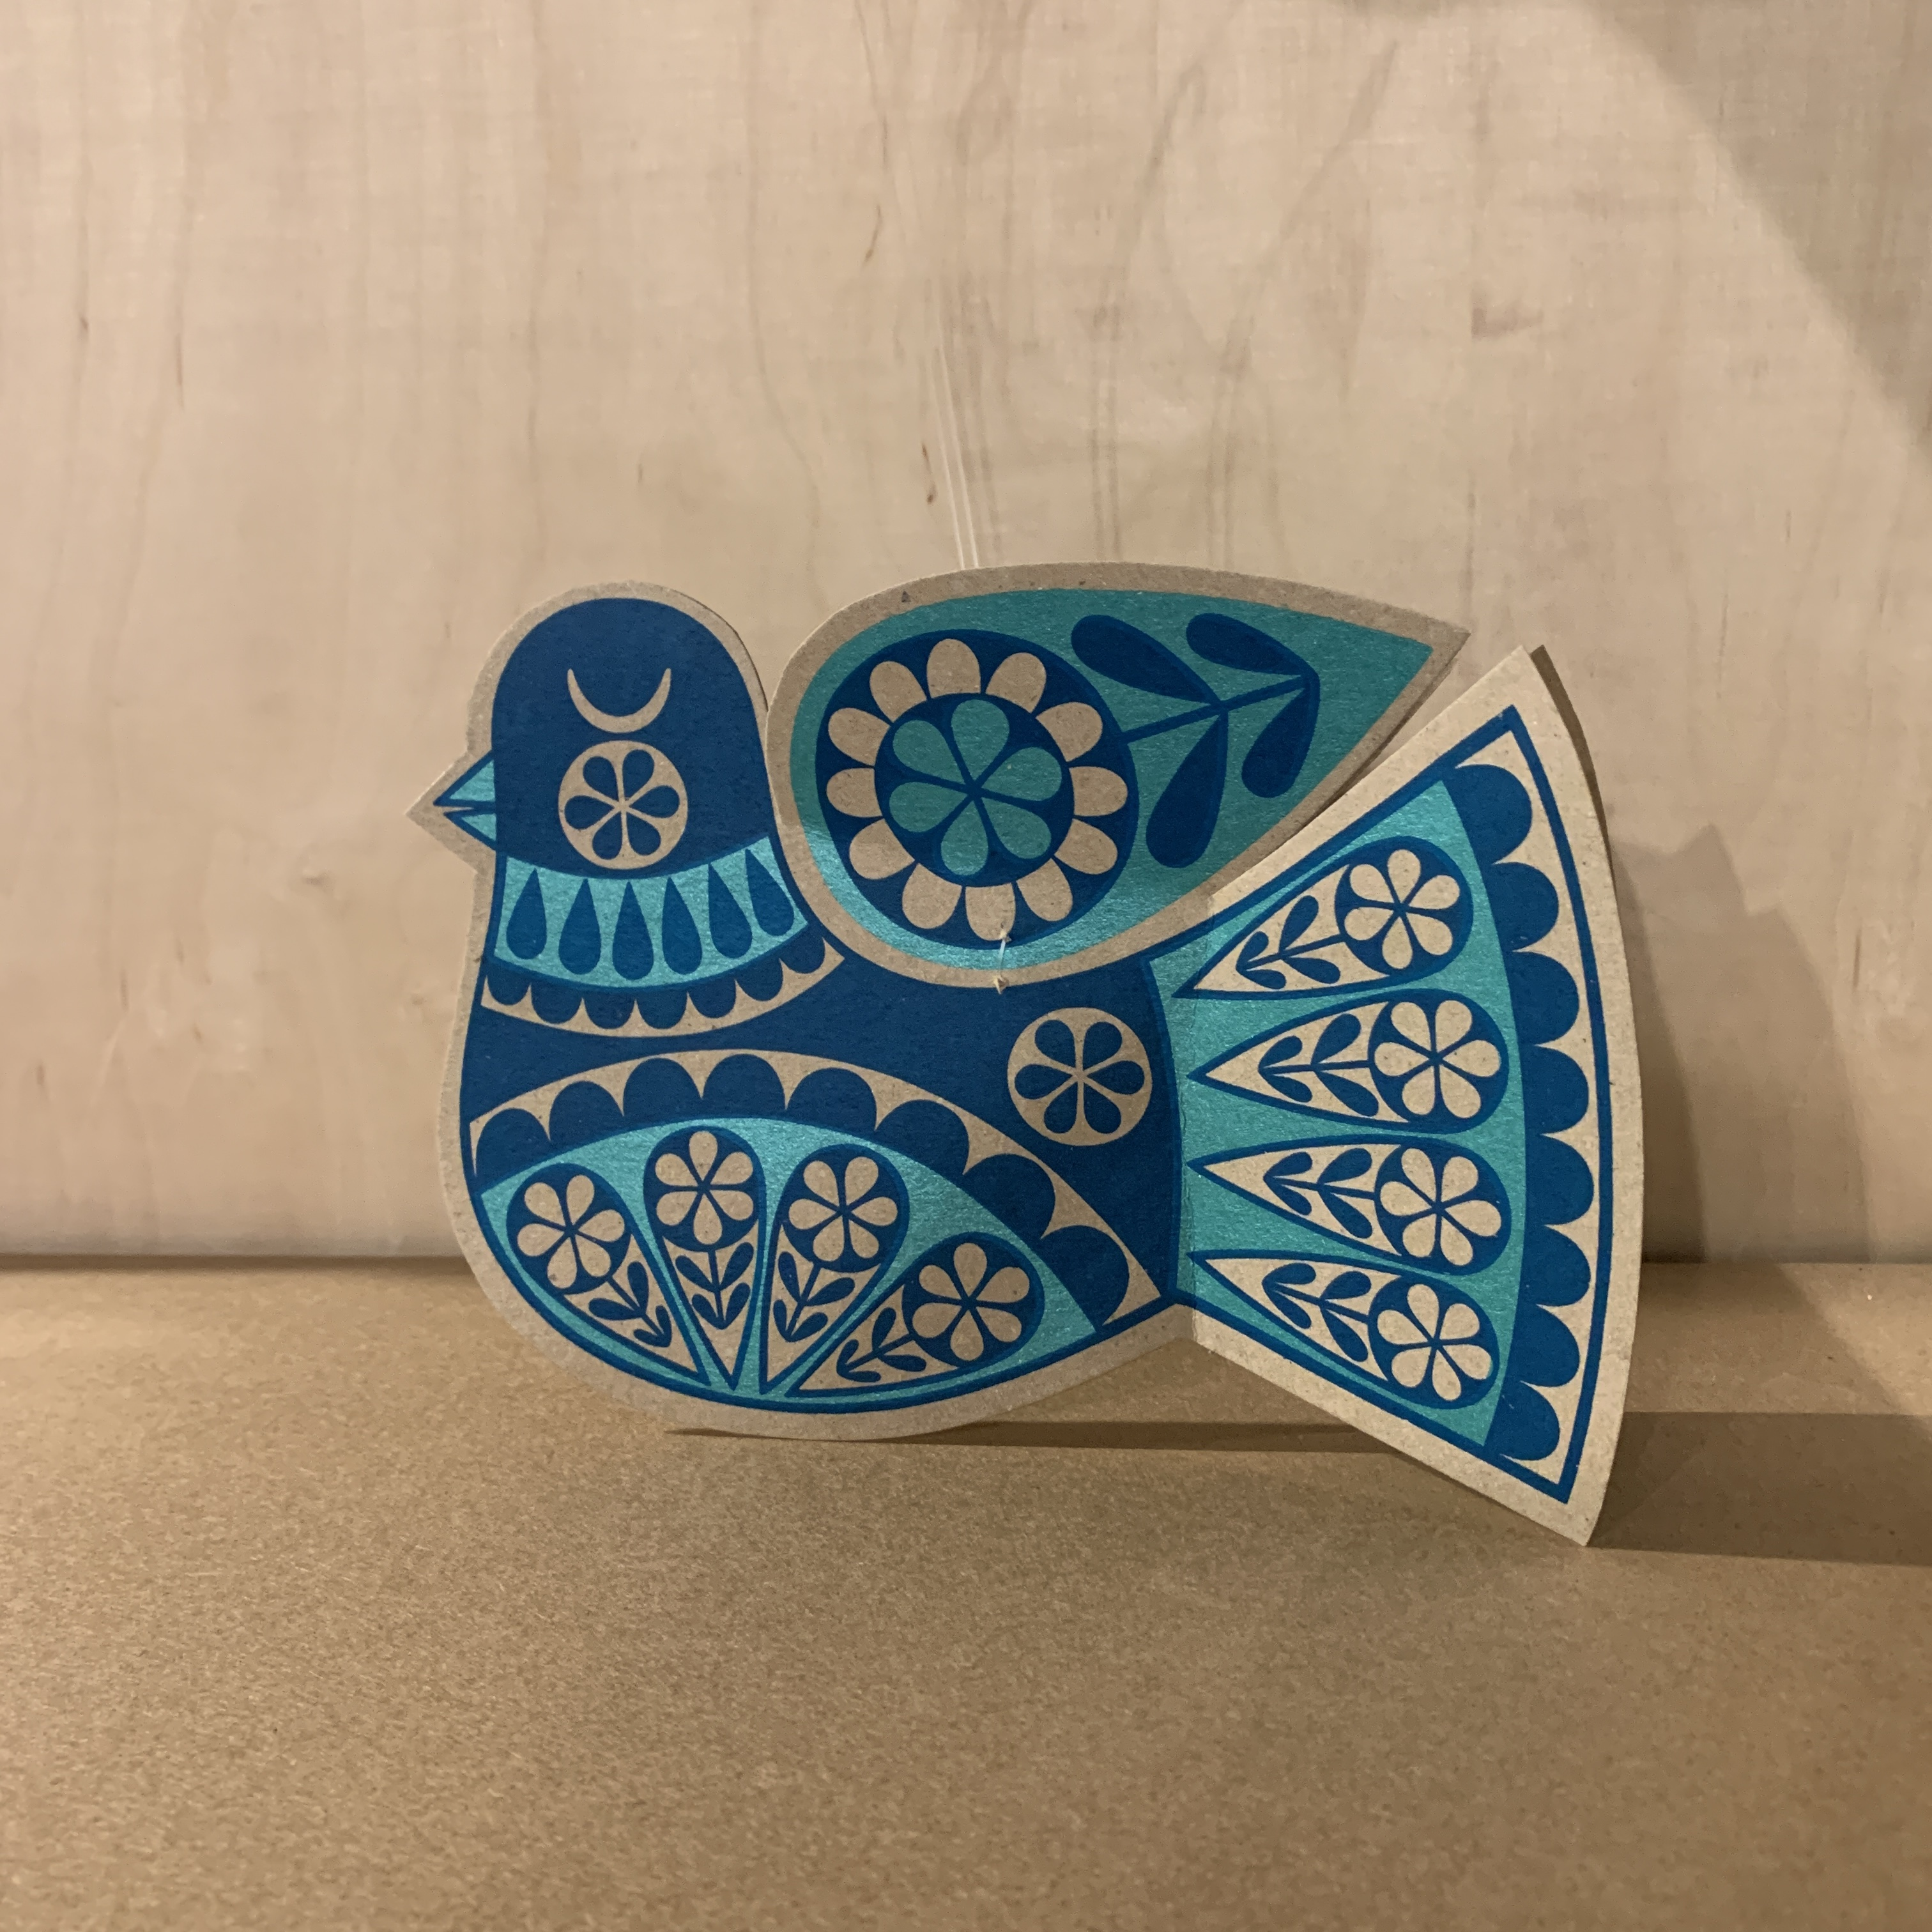 Karoline Rerrie - Screenprinted Blue Bird Decoration